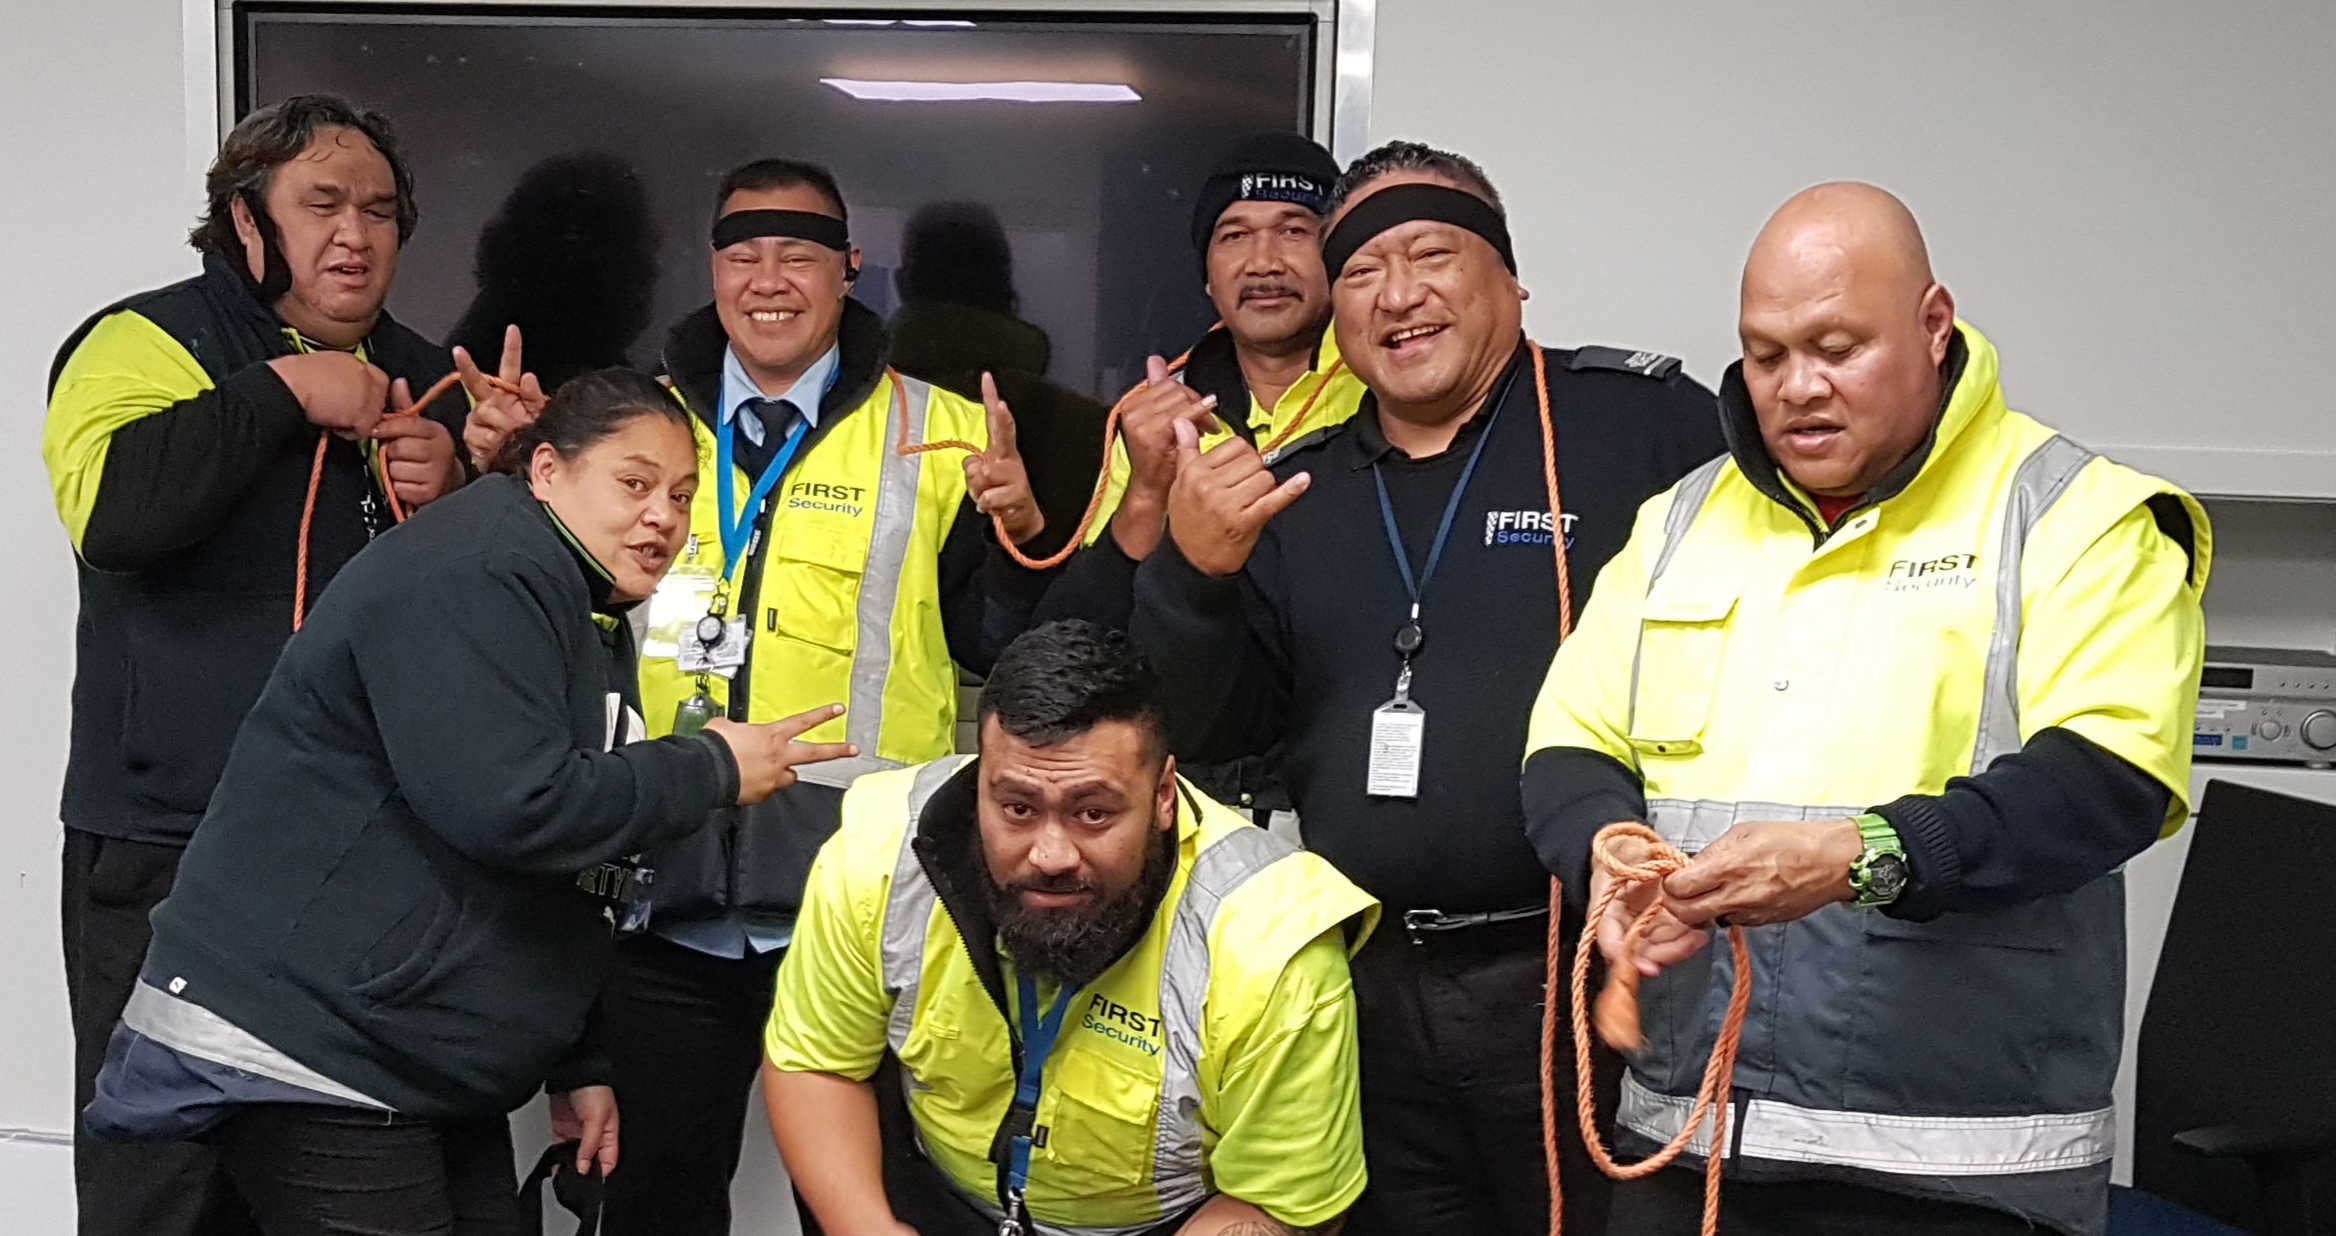 Gary and some of the Ports of Auckland First Security team